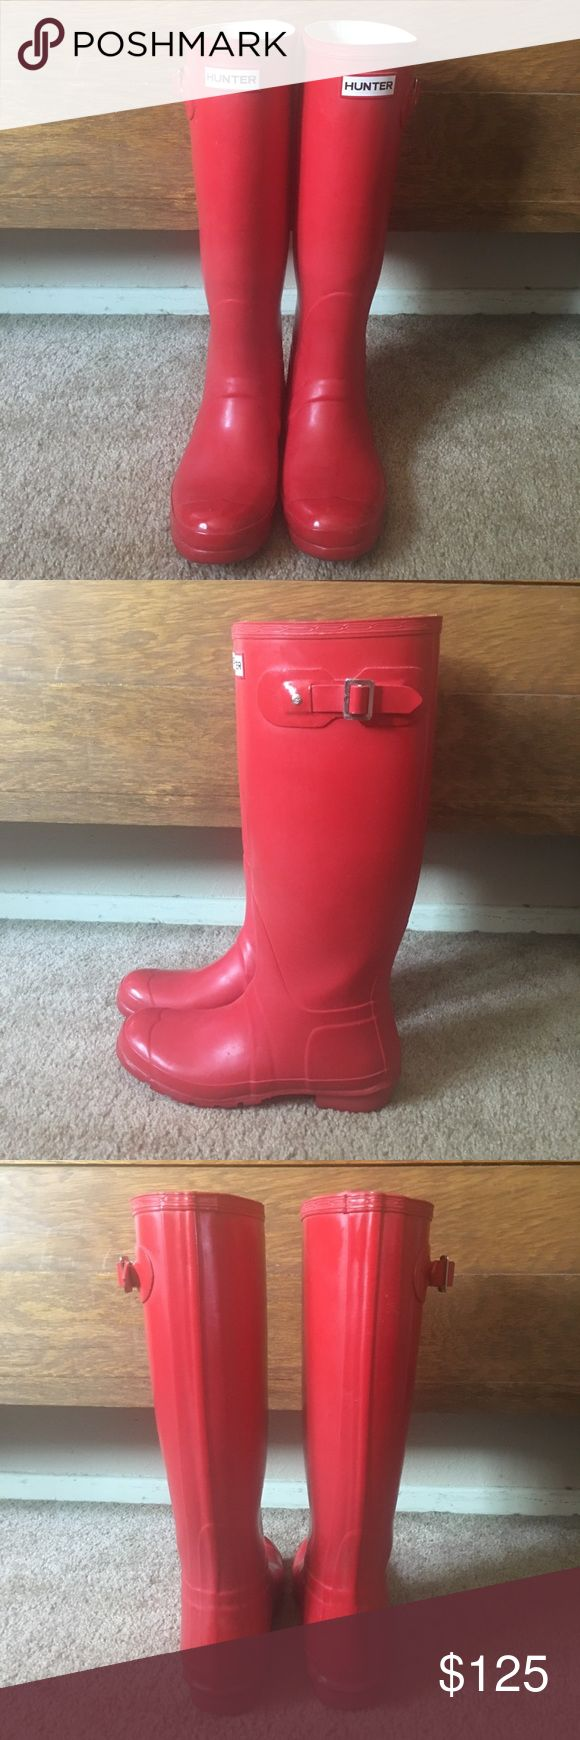 Hunter Rain boots Tall Red Hunter Welly Rain Boots US size 8/9. Excellent condition. I never wear them due to it hardly rains in Los Angeles. ❌NO TRADES❌ Hunter Boots Shoes Winter & Rain Boots